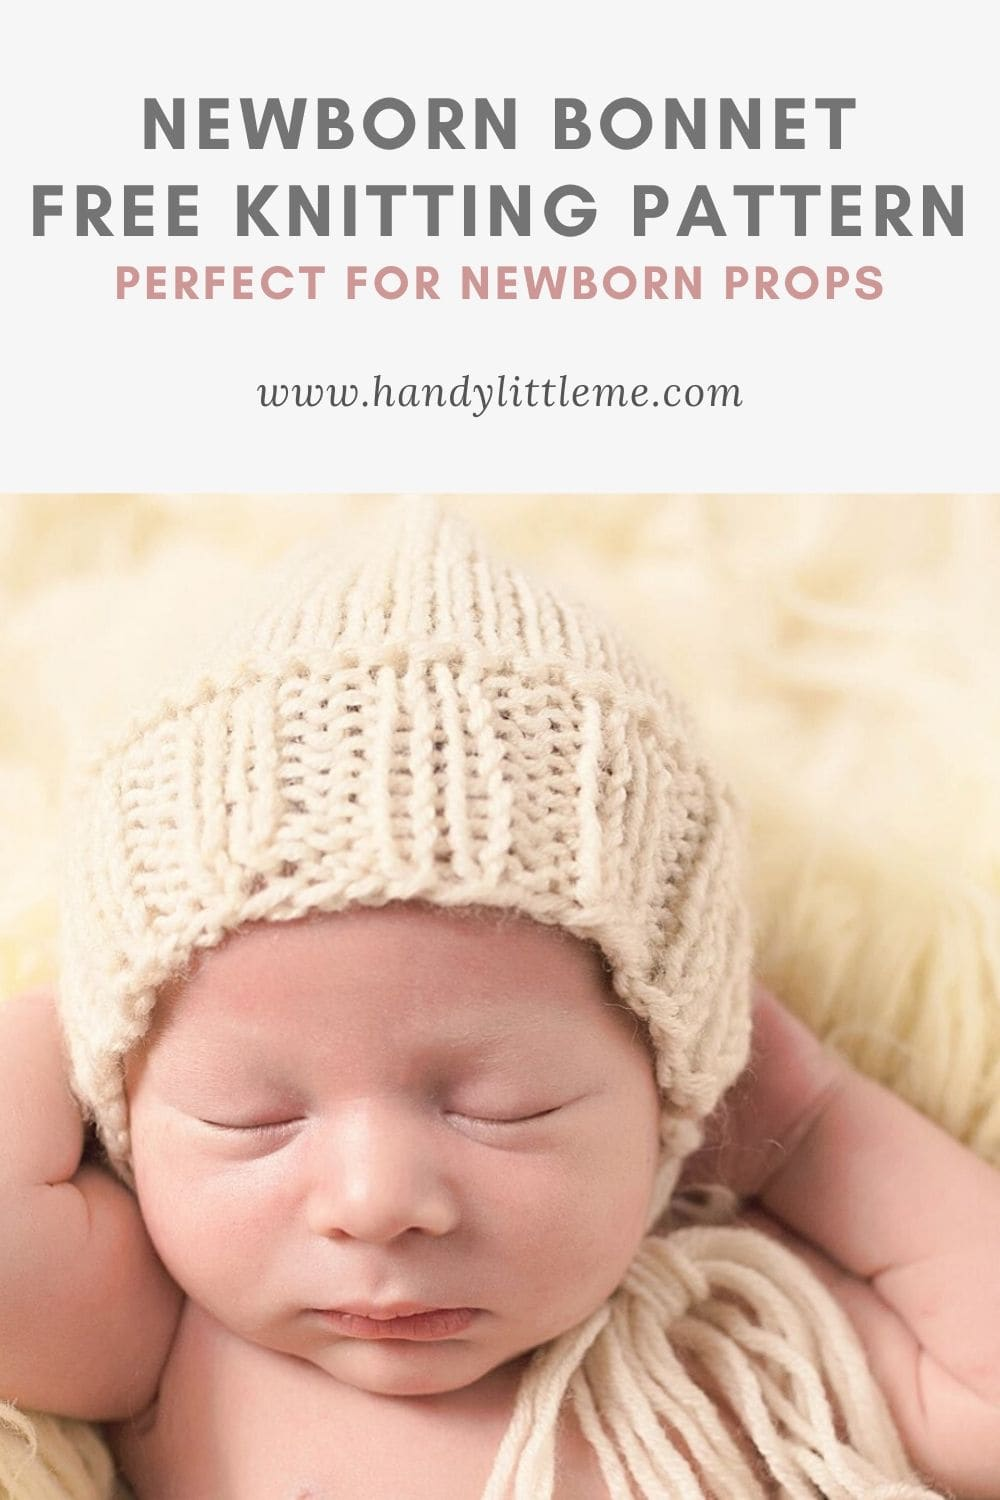 Newborn bonnet knitting pattern